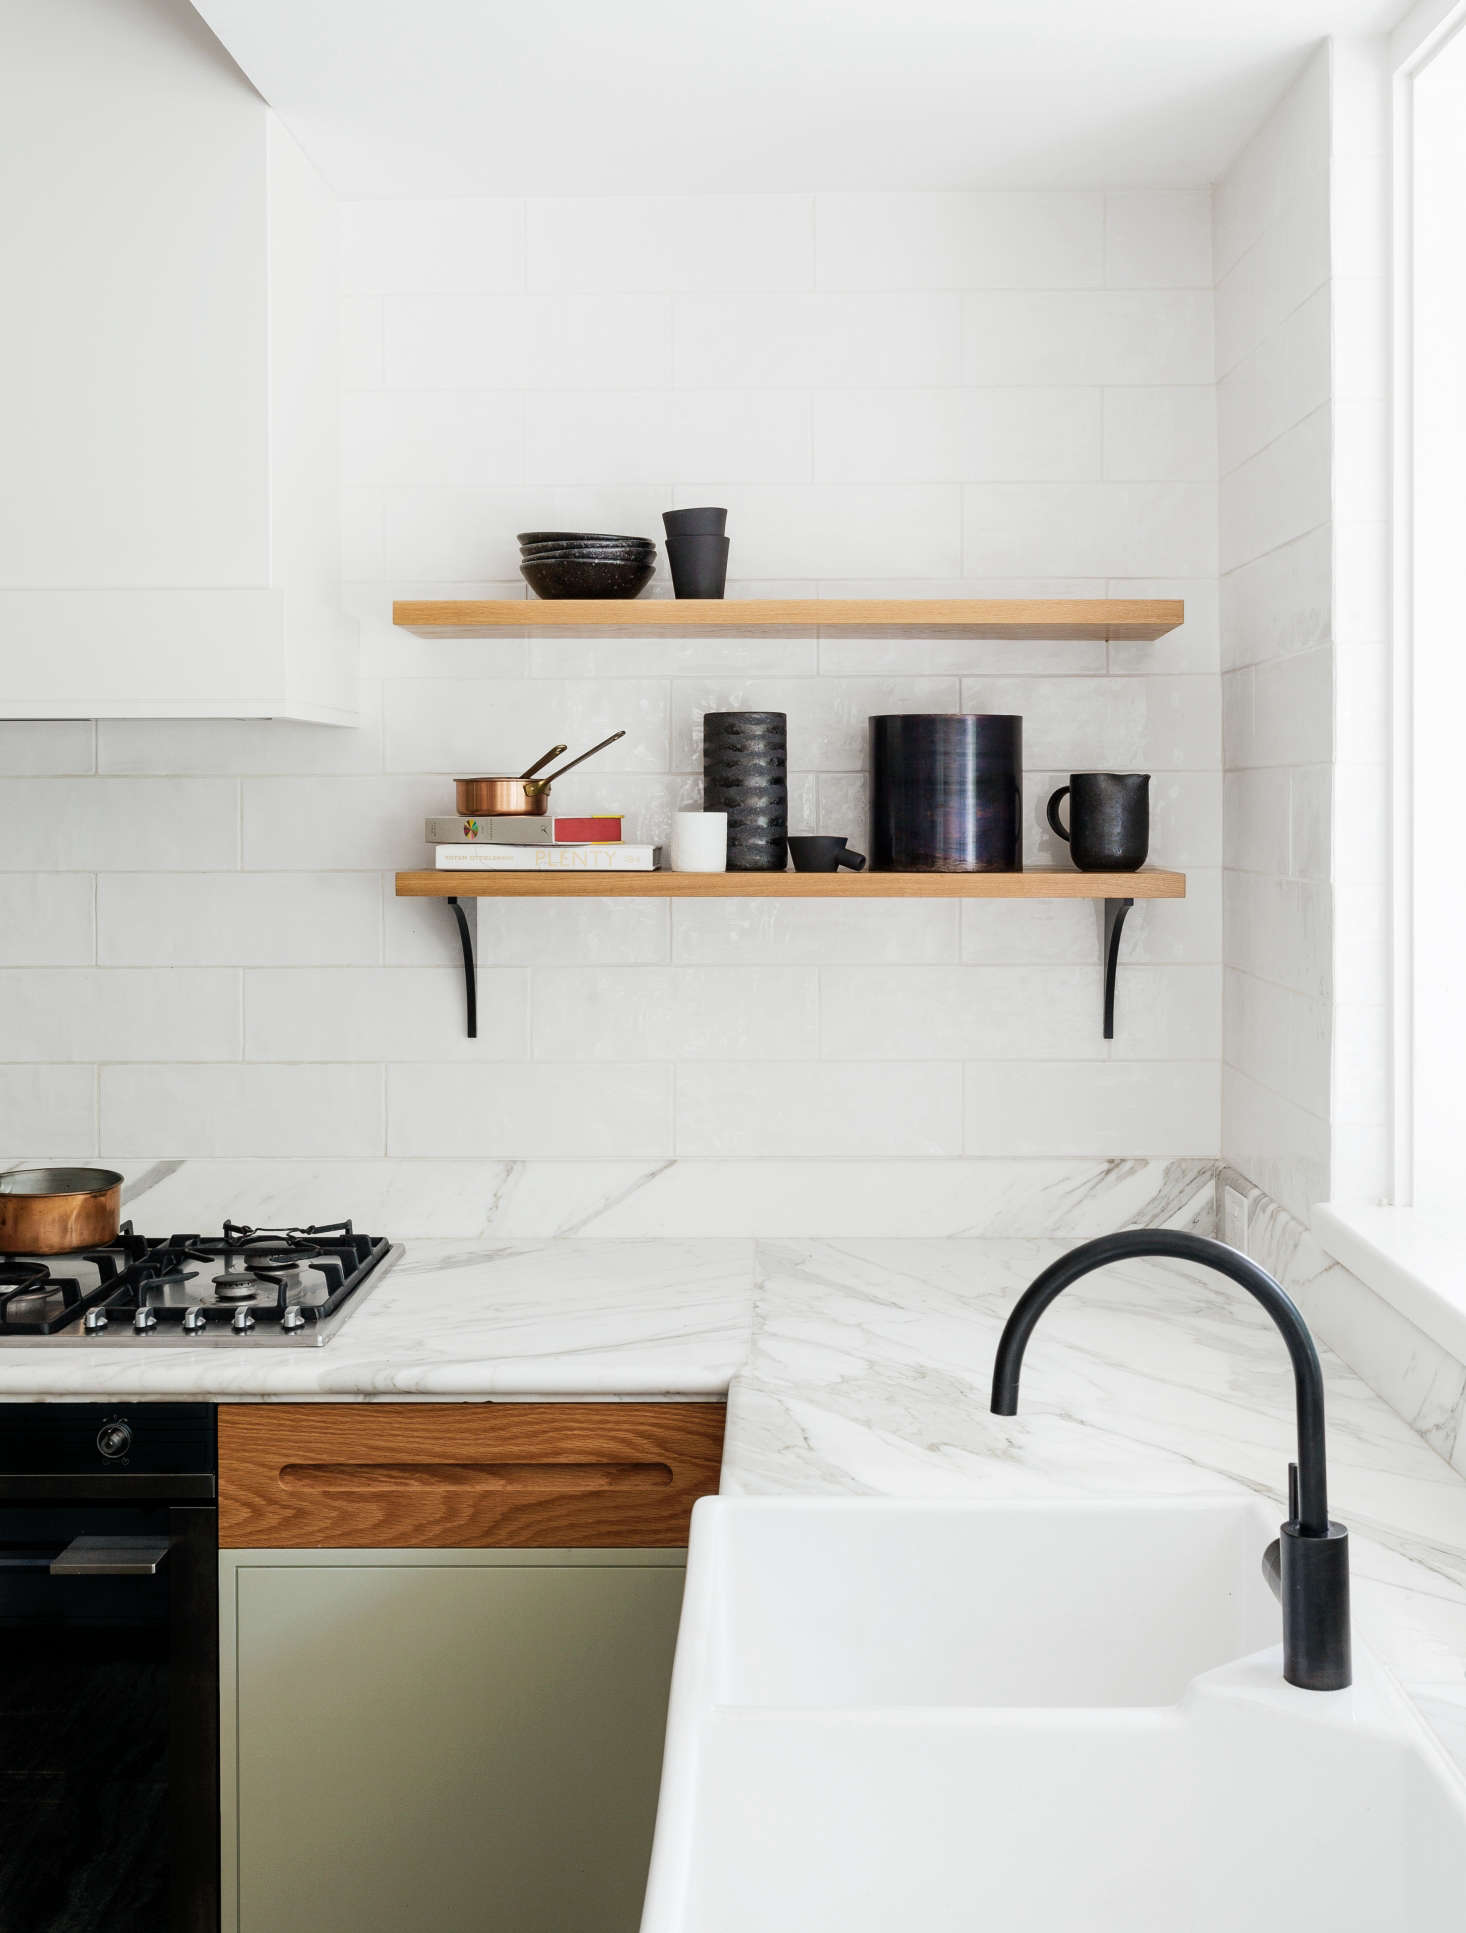 A clean and fresh-looking kitchen remodel with Calacatta marble counters, handmade subway tiles, a black spout faucet, and butler's sink by interior designers Arent & Pyke of Sydney. The cabinets are painted and feature custom oak panels. The open shelves have custom black brackets made of MDF | Remodelista